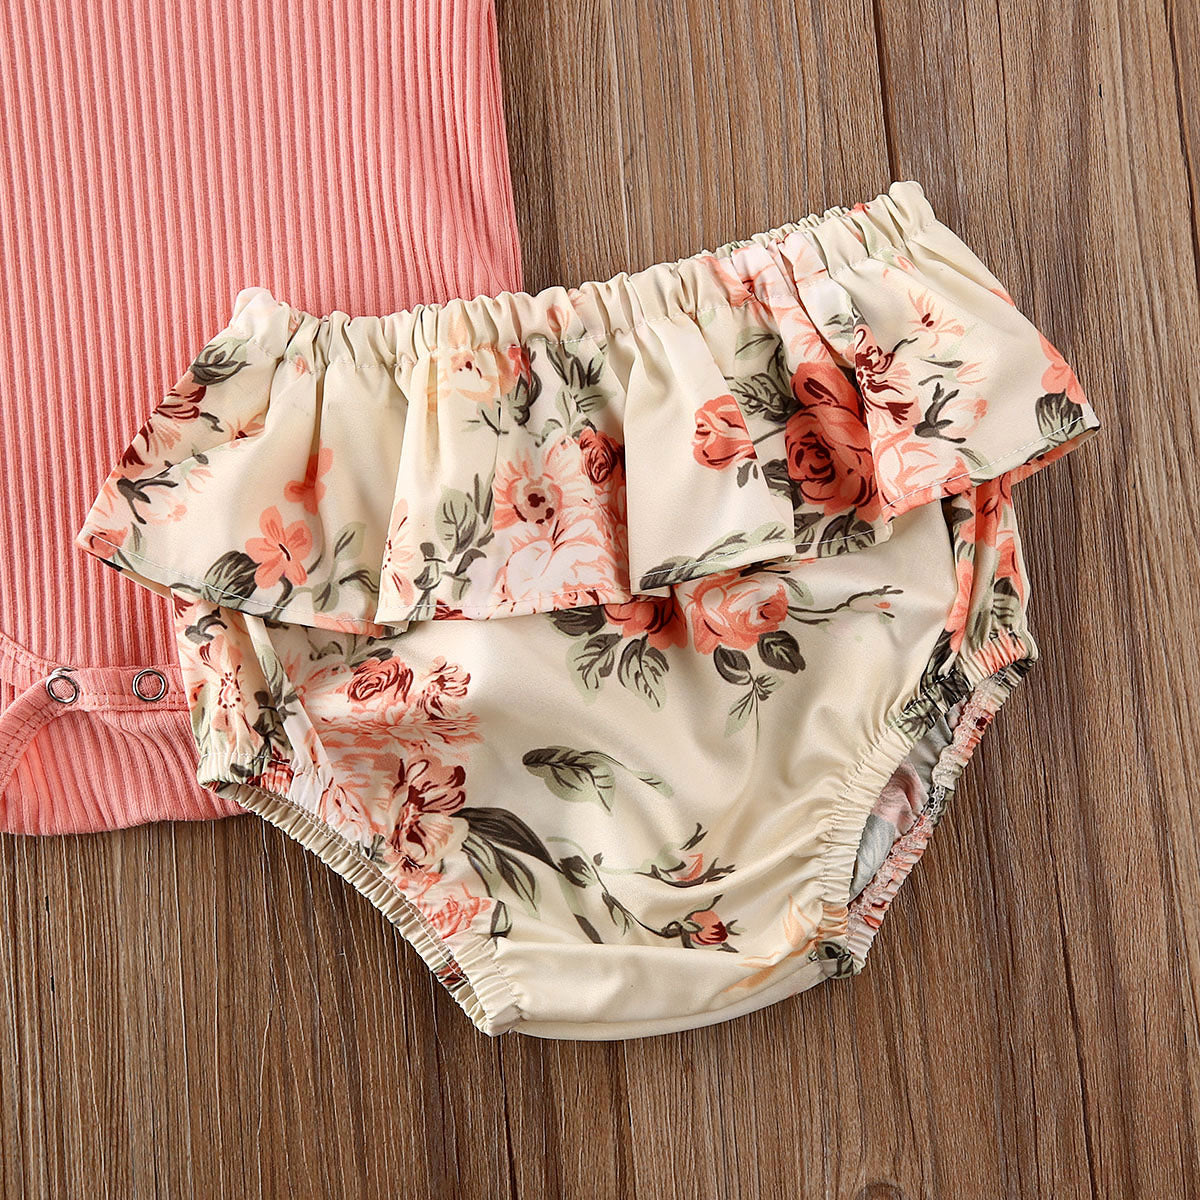 Floral Ruffled Ribbed Romper and Shorts with Headband